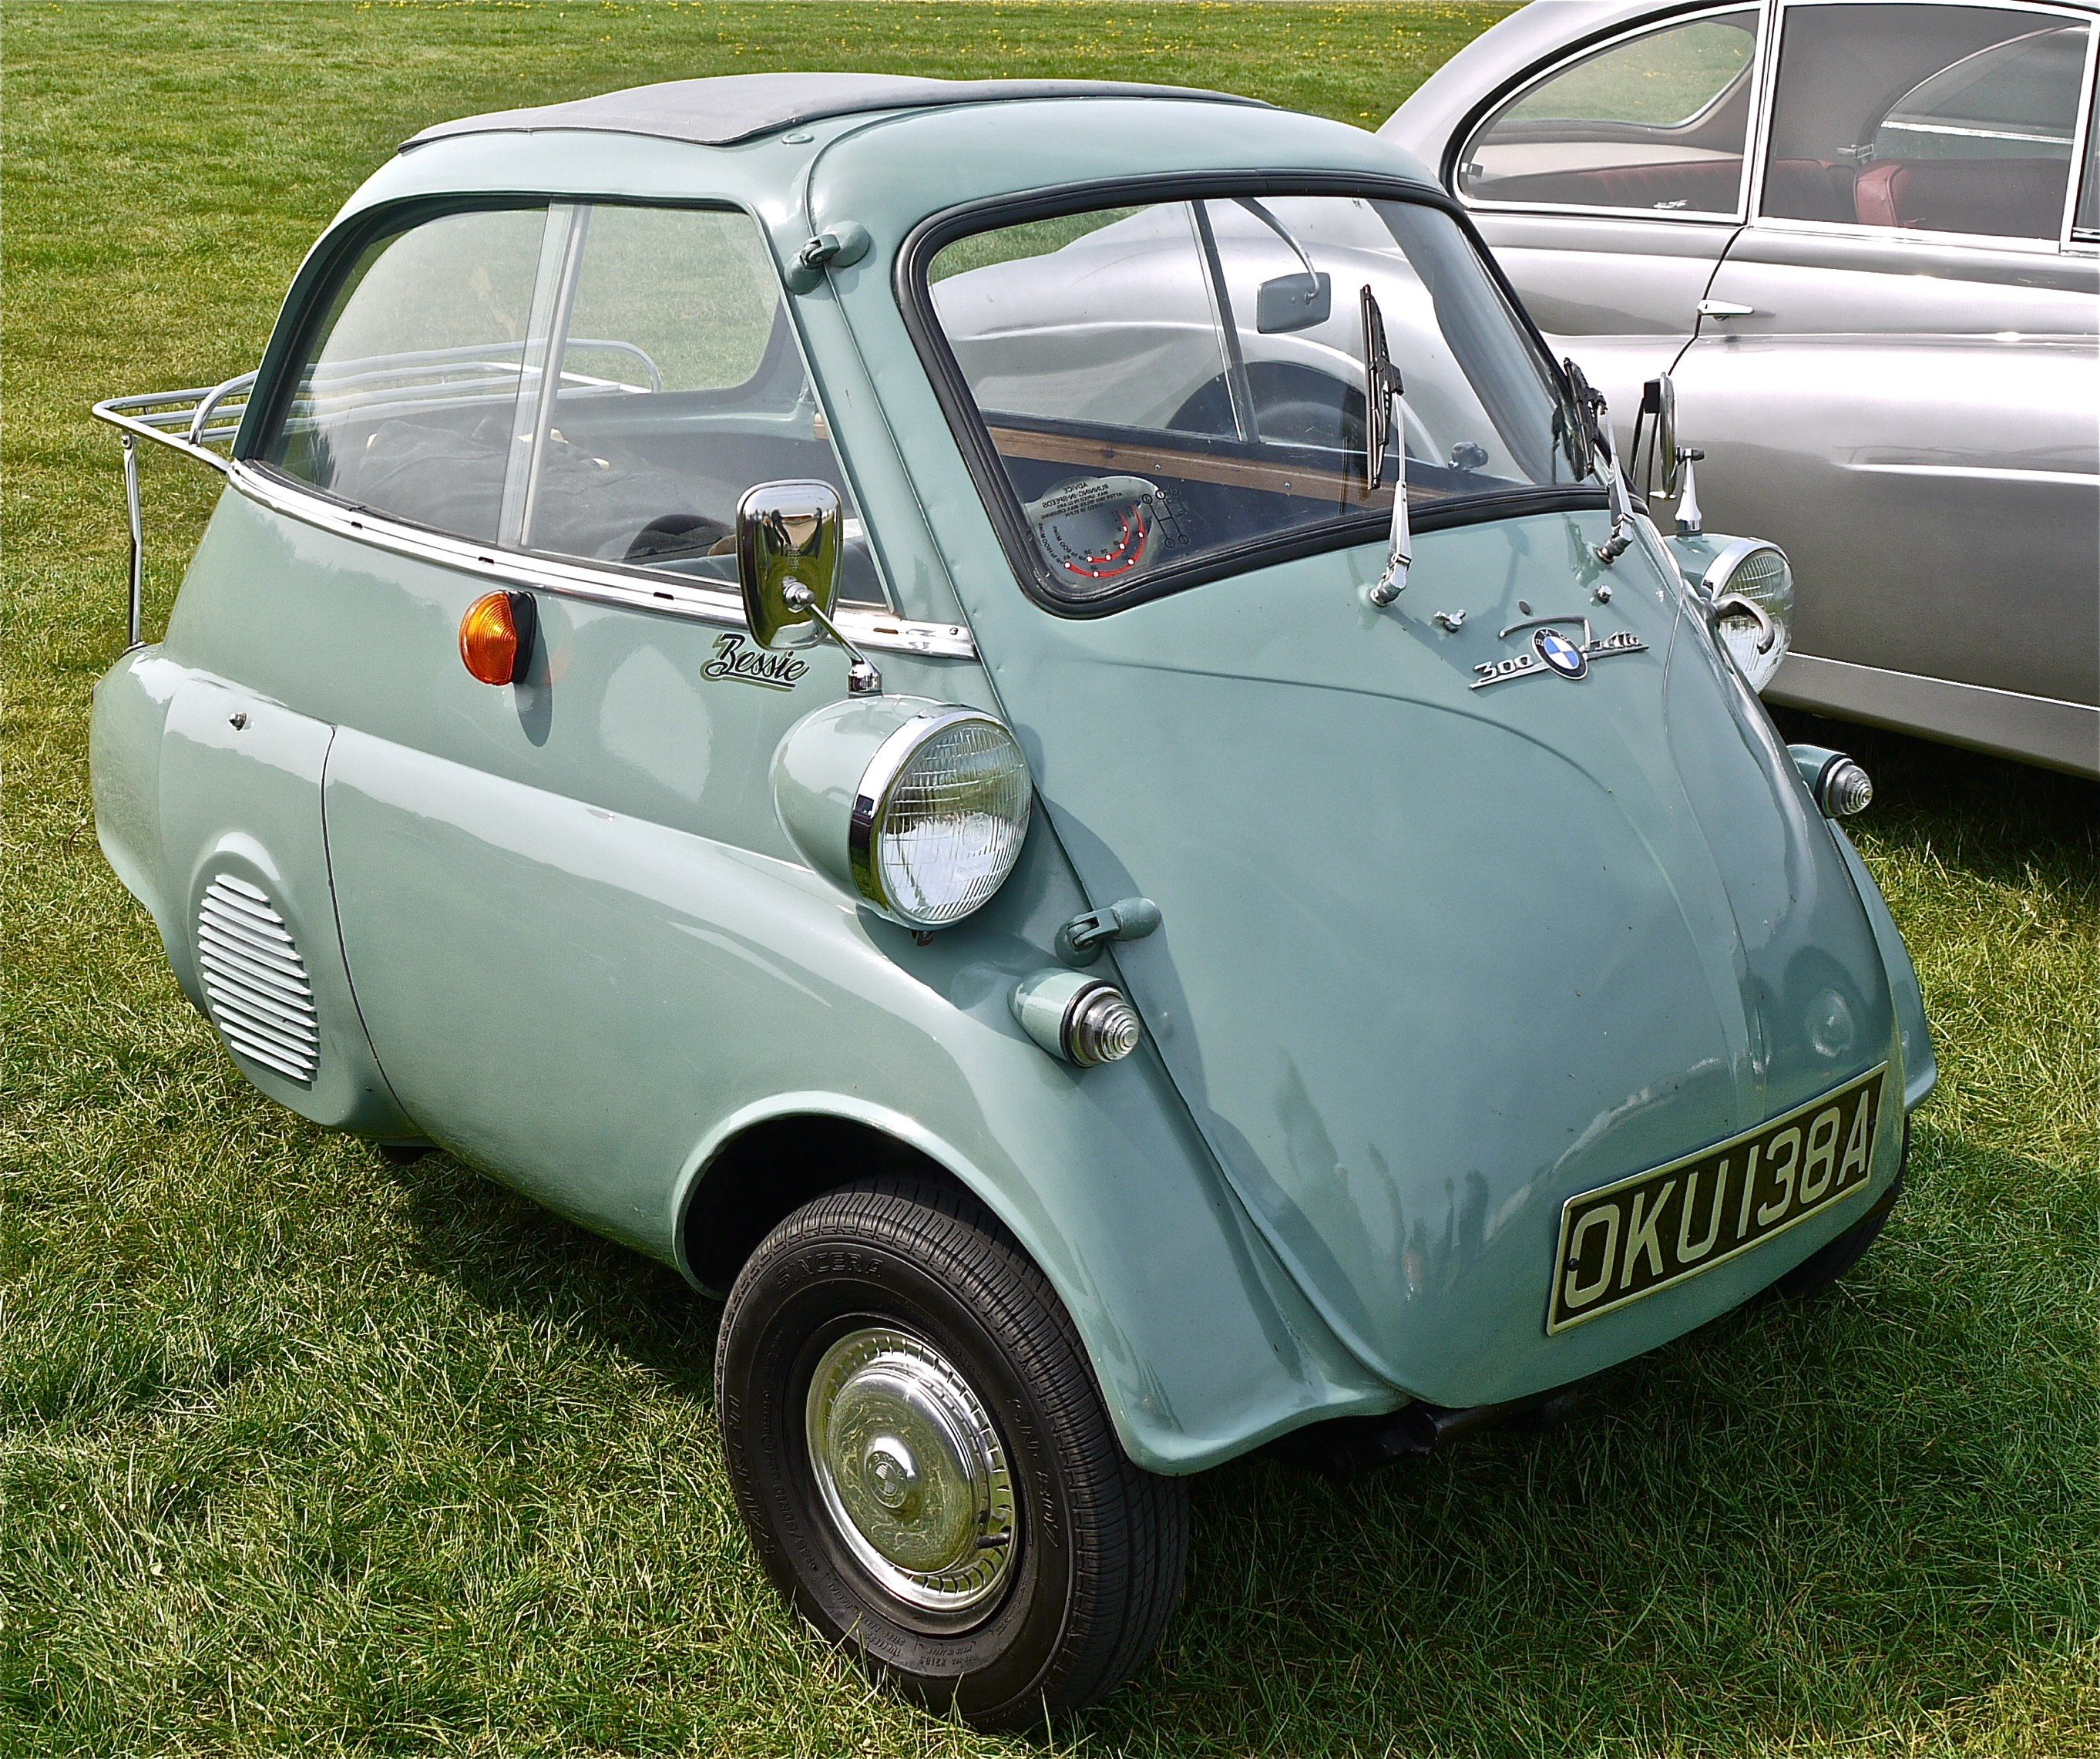 Bmw isetta the bmw isetta was in 1955 the world s first mass production km car note it was the top selling single cylinder car in the world